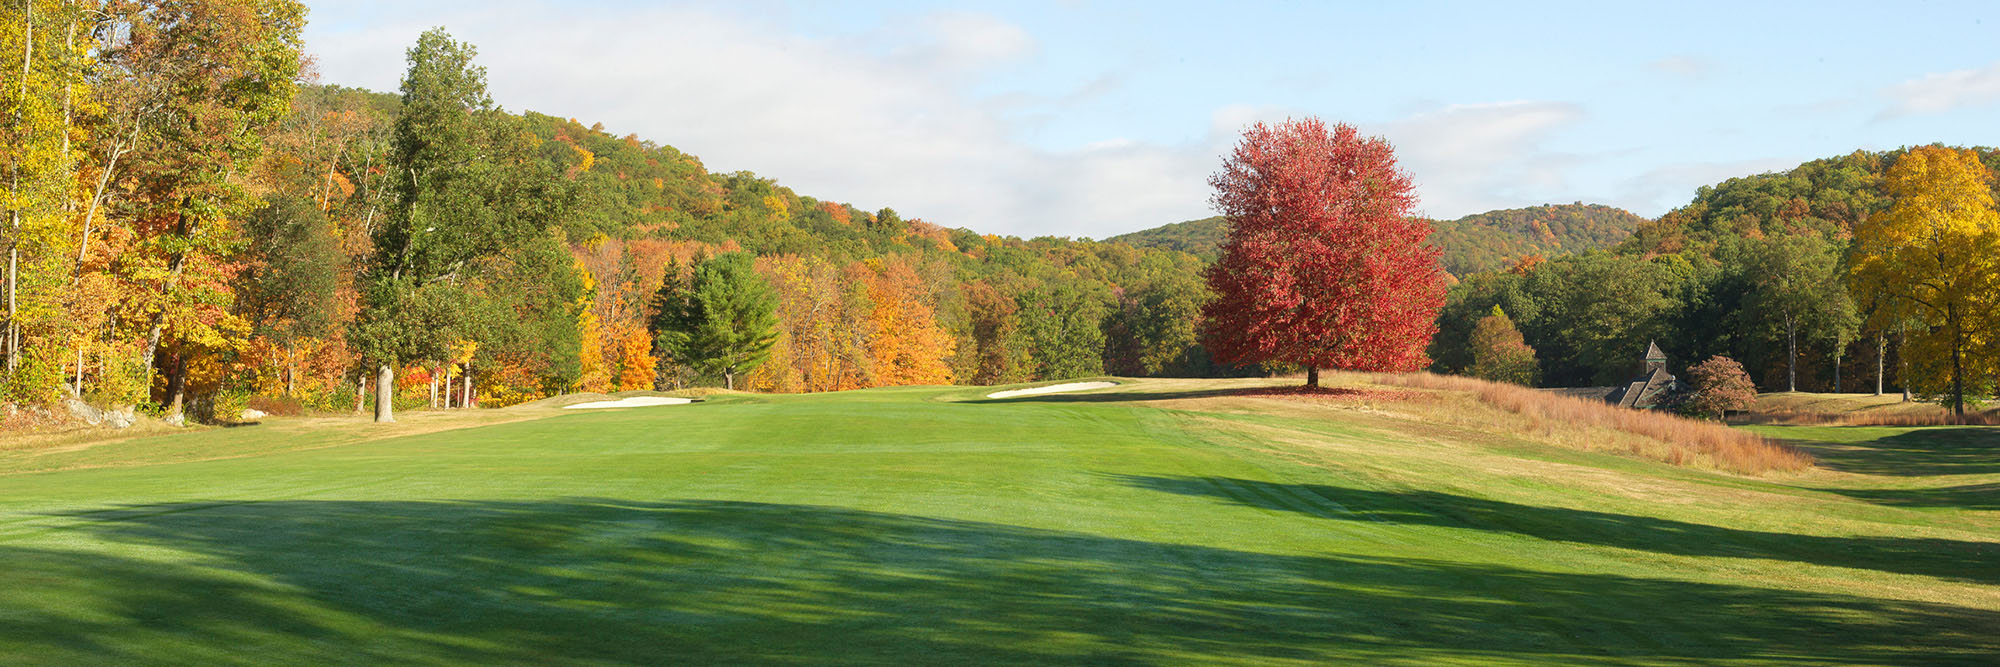 Golf Course Image - The Tuxedo Club No. 9